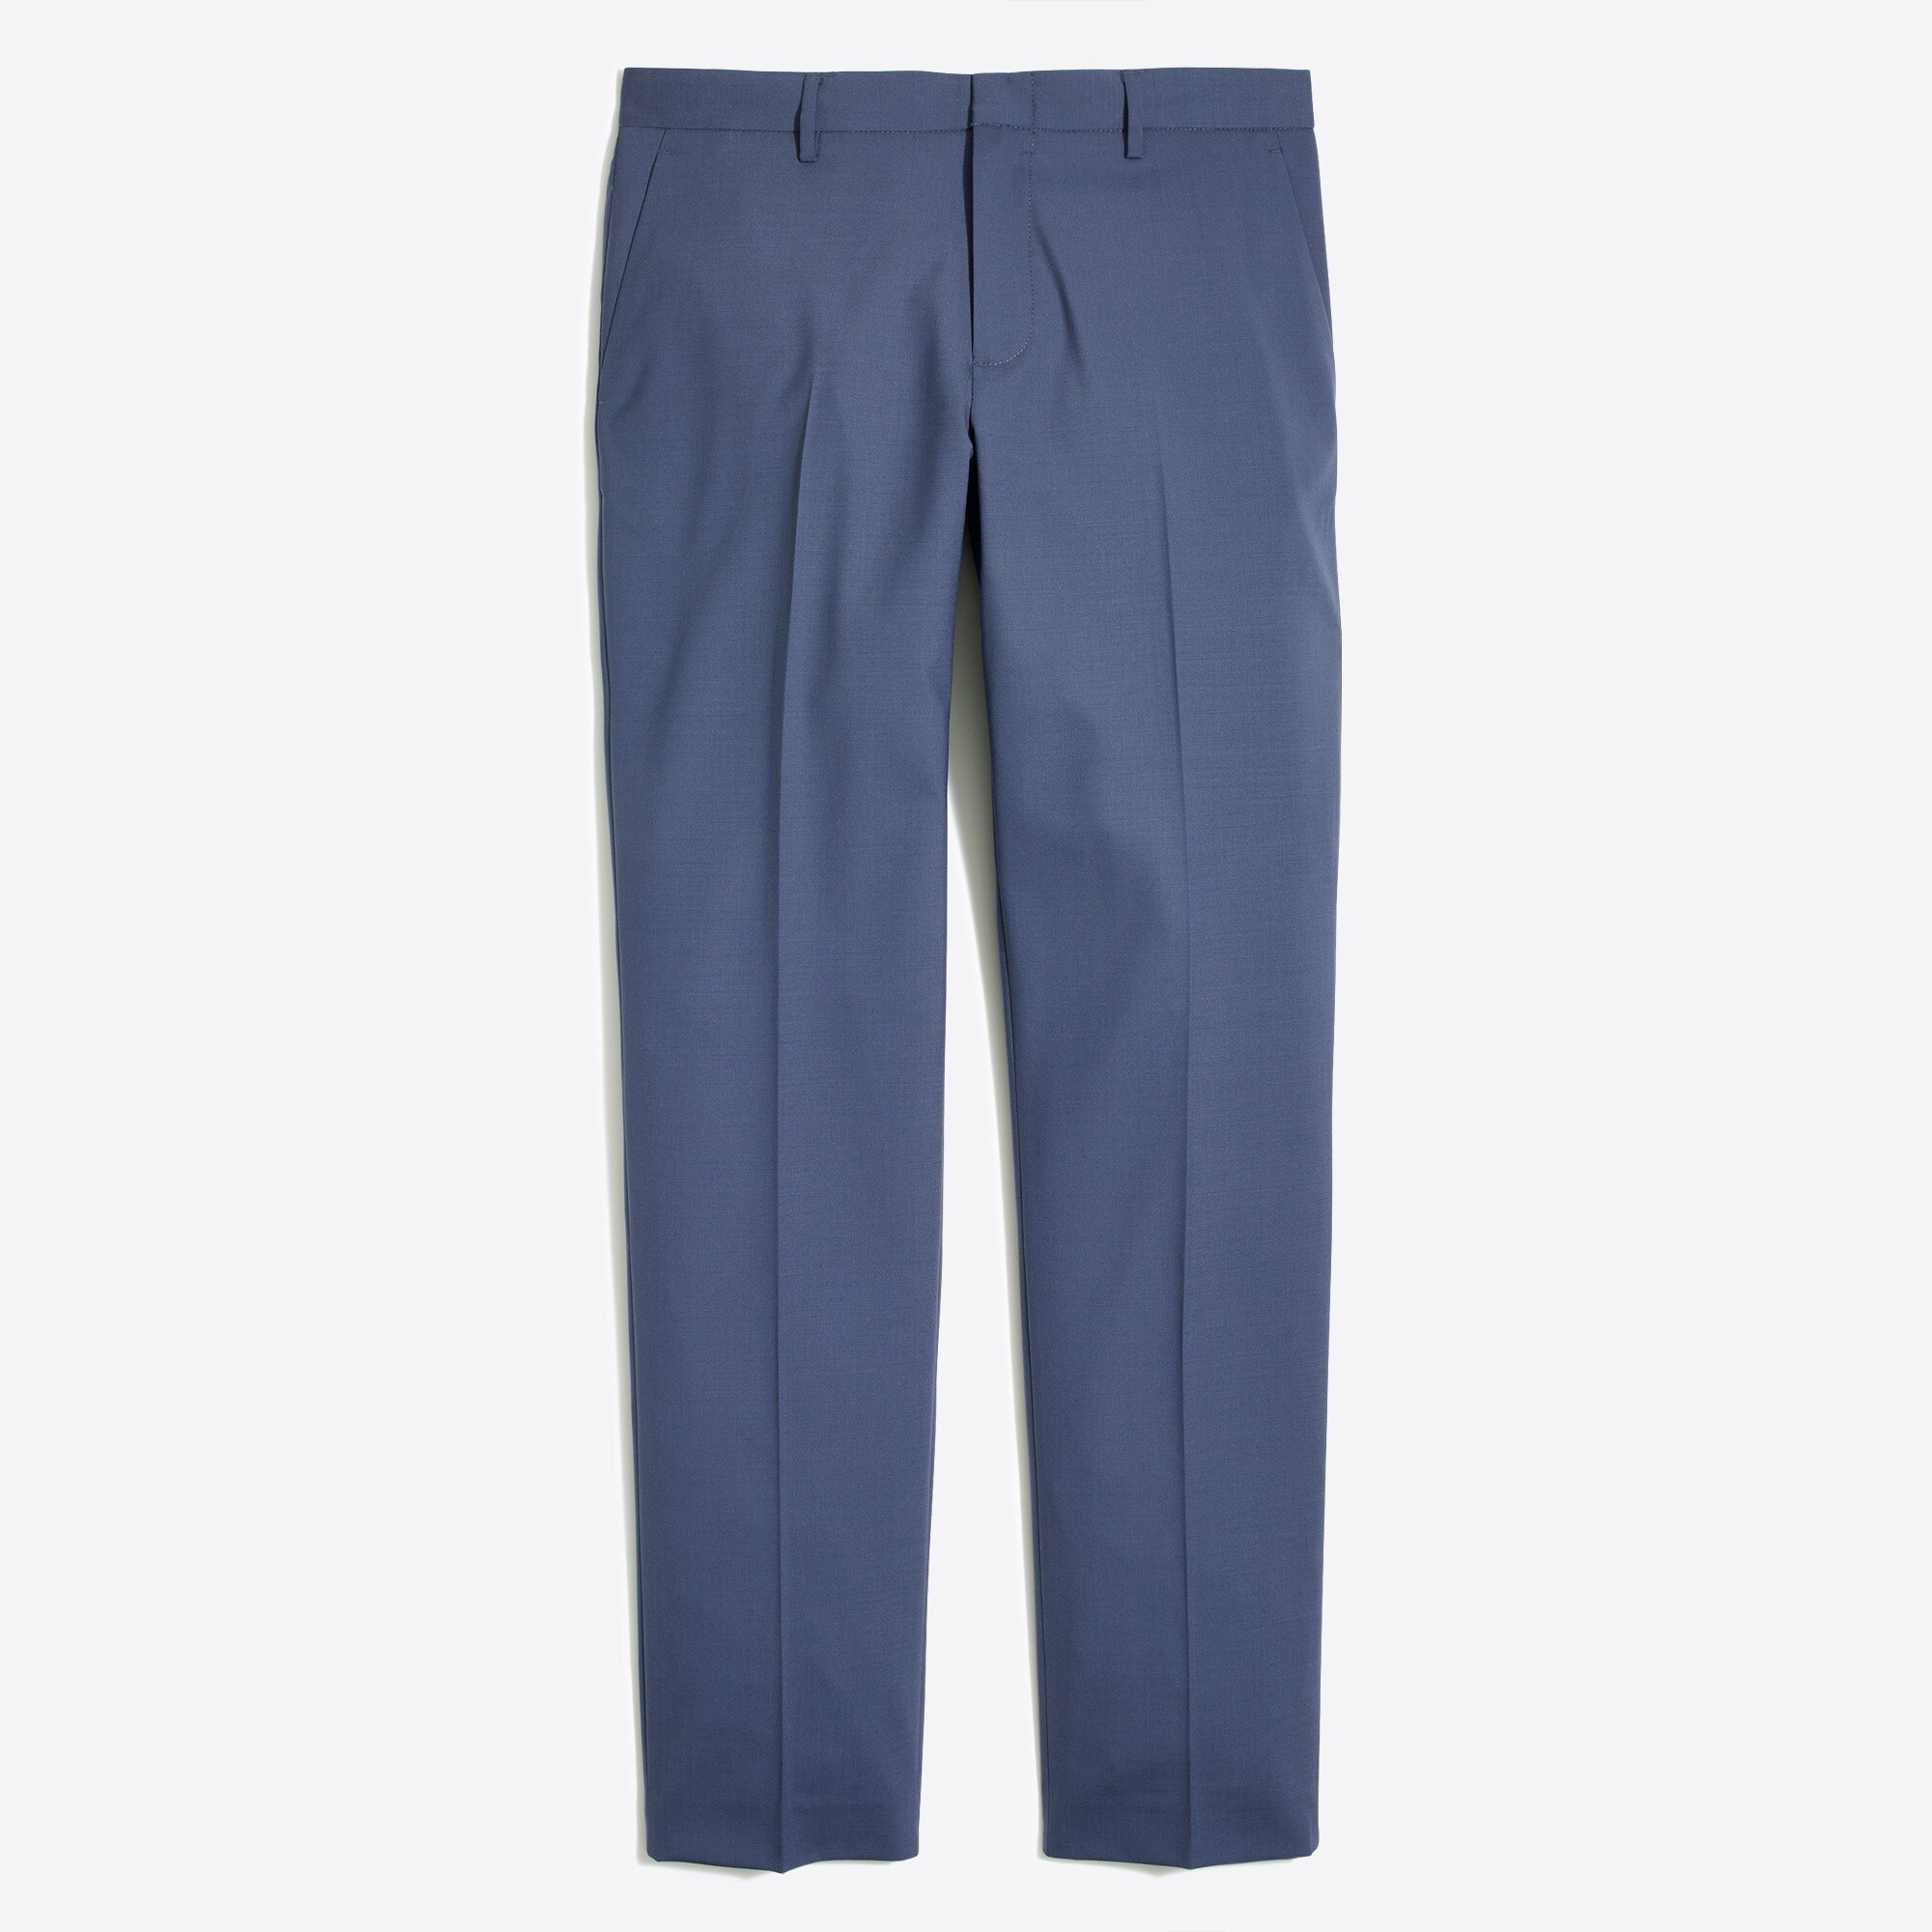 slim thompson suit pant in lightweight flex wool : factorymen flex suiting